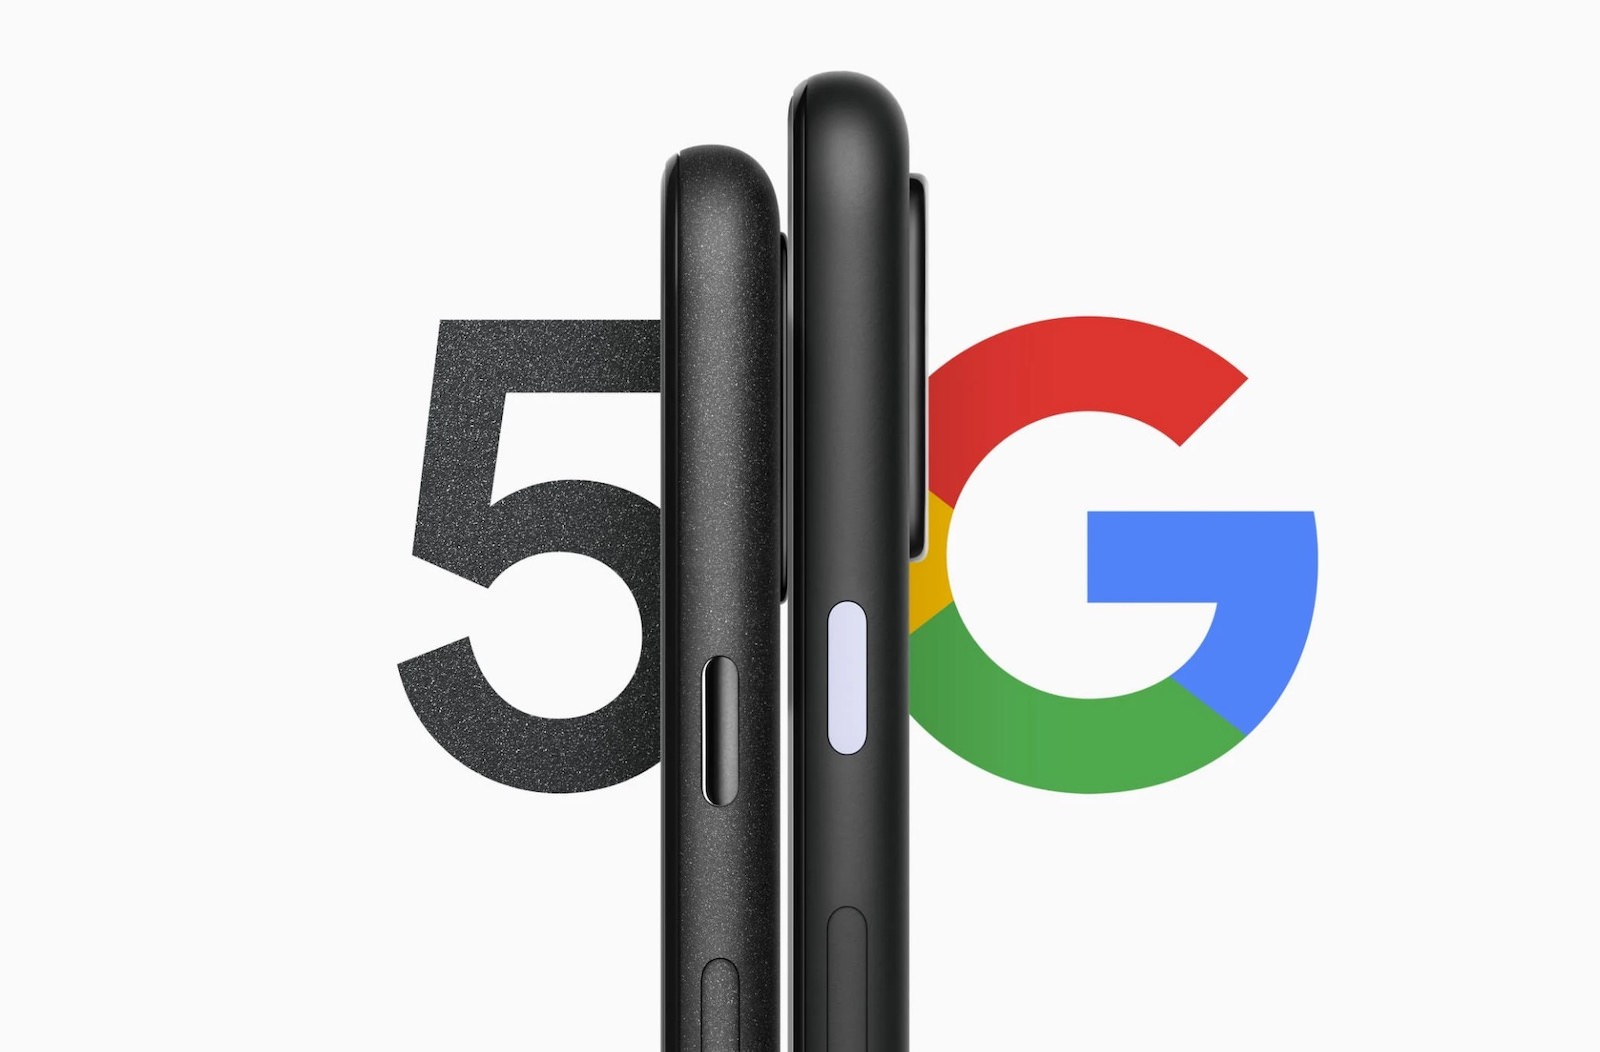 Google pixel4a 5g and 5